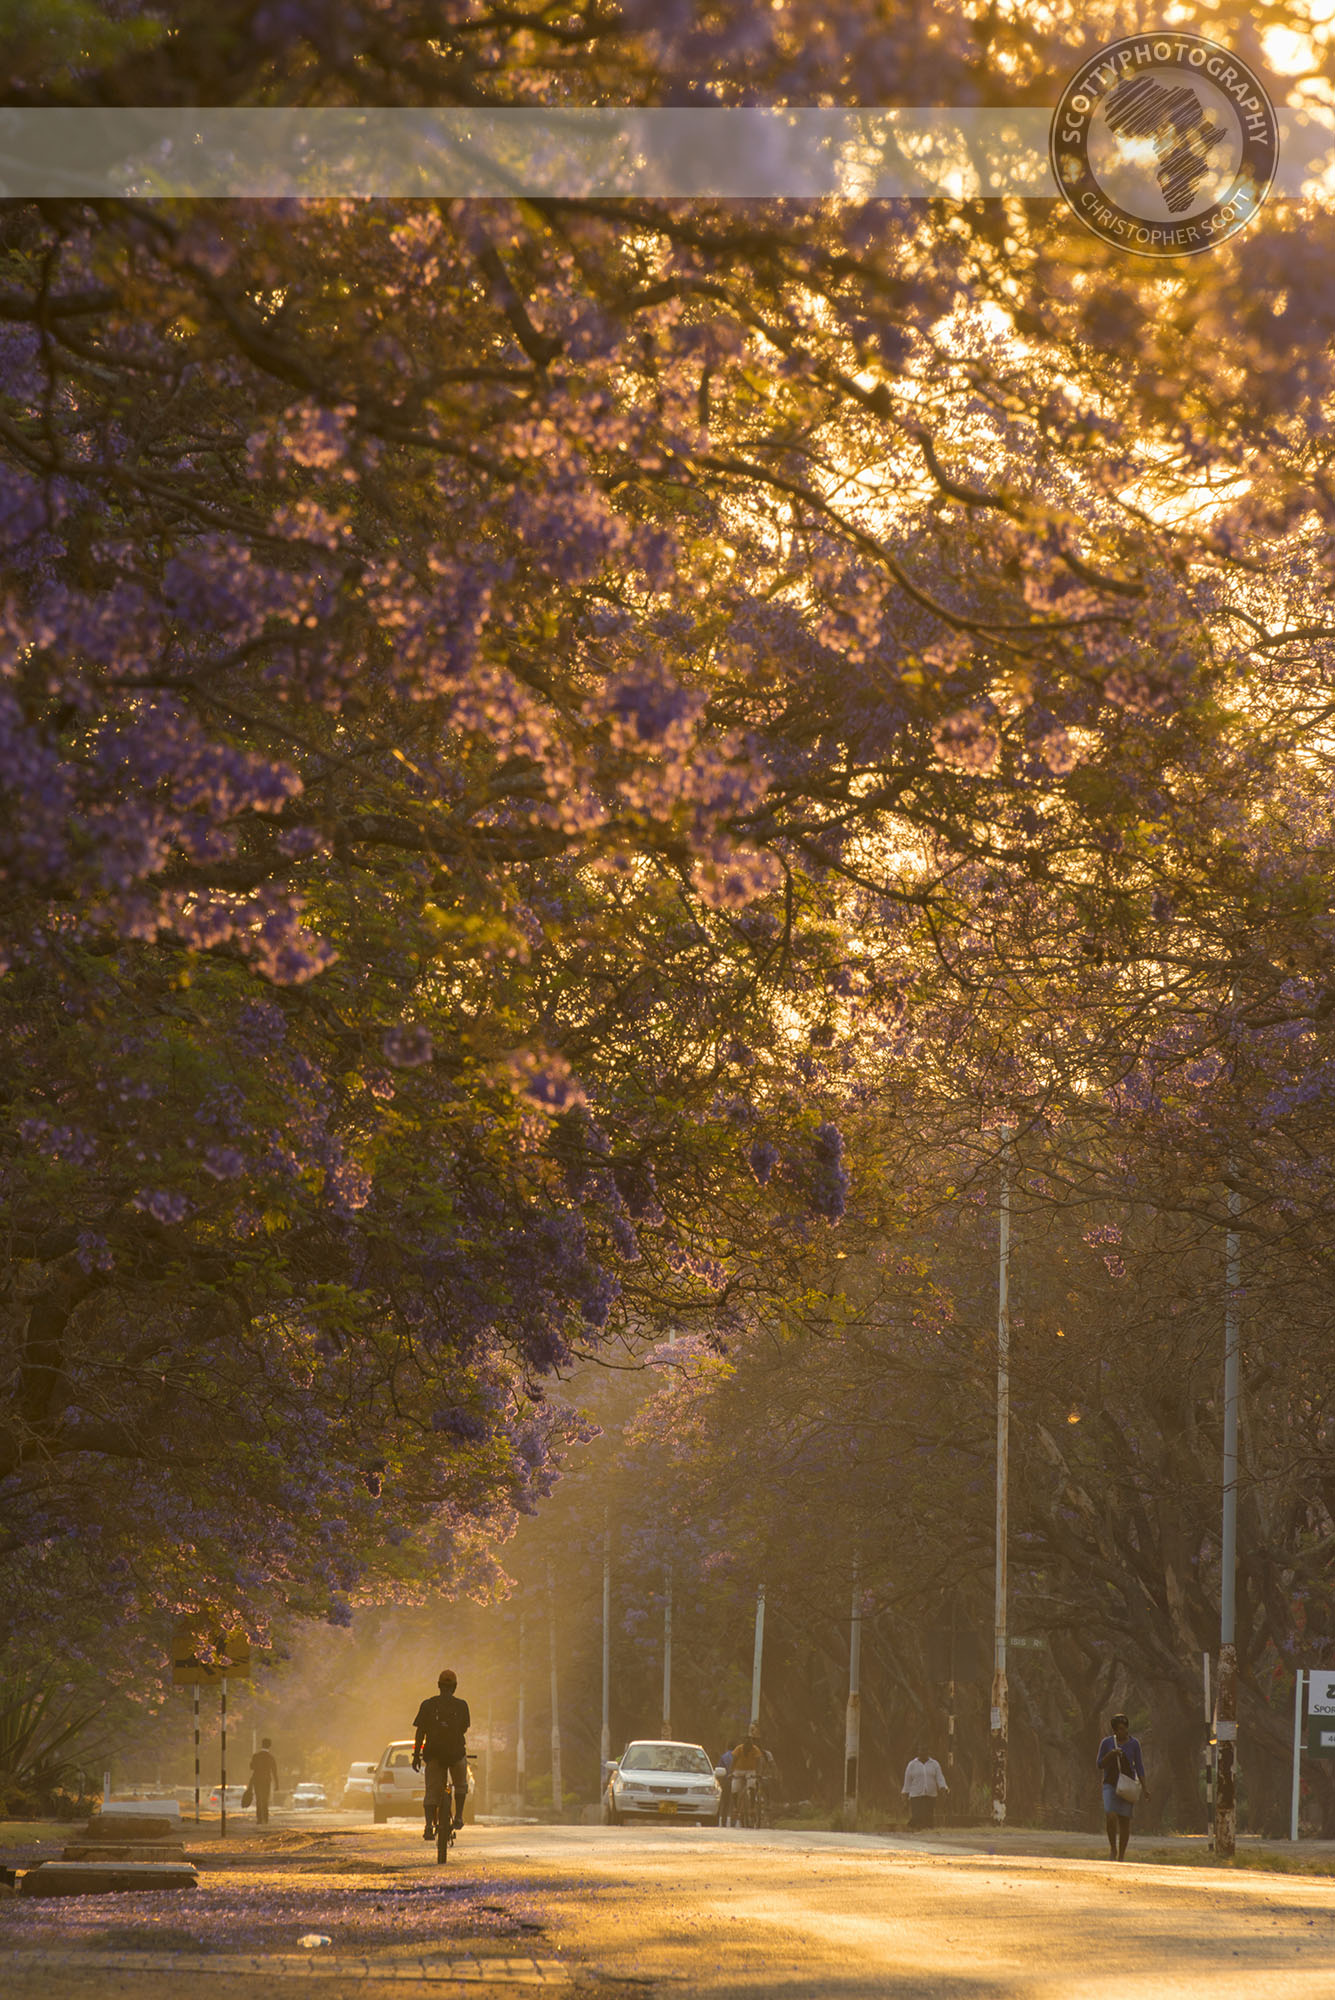 Golden hour light will add that extra vibrancy to your jacaranda pictures.